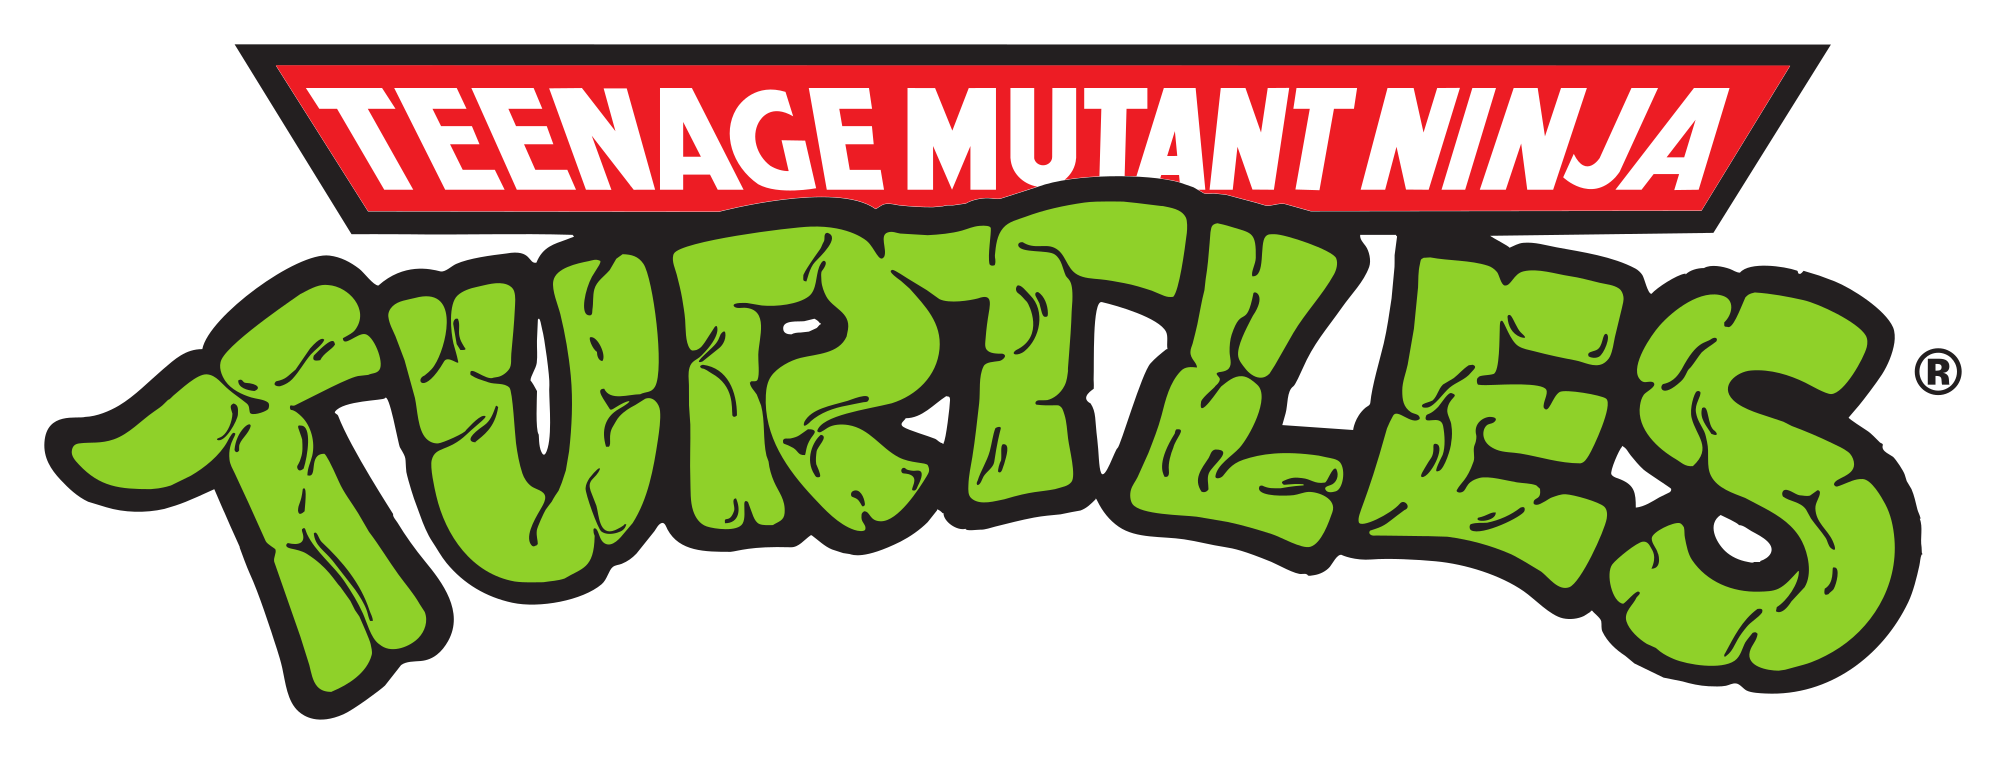 Clipart turtle face. Ninja turtles png images